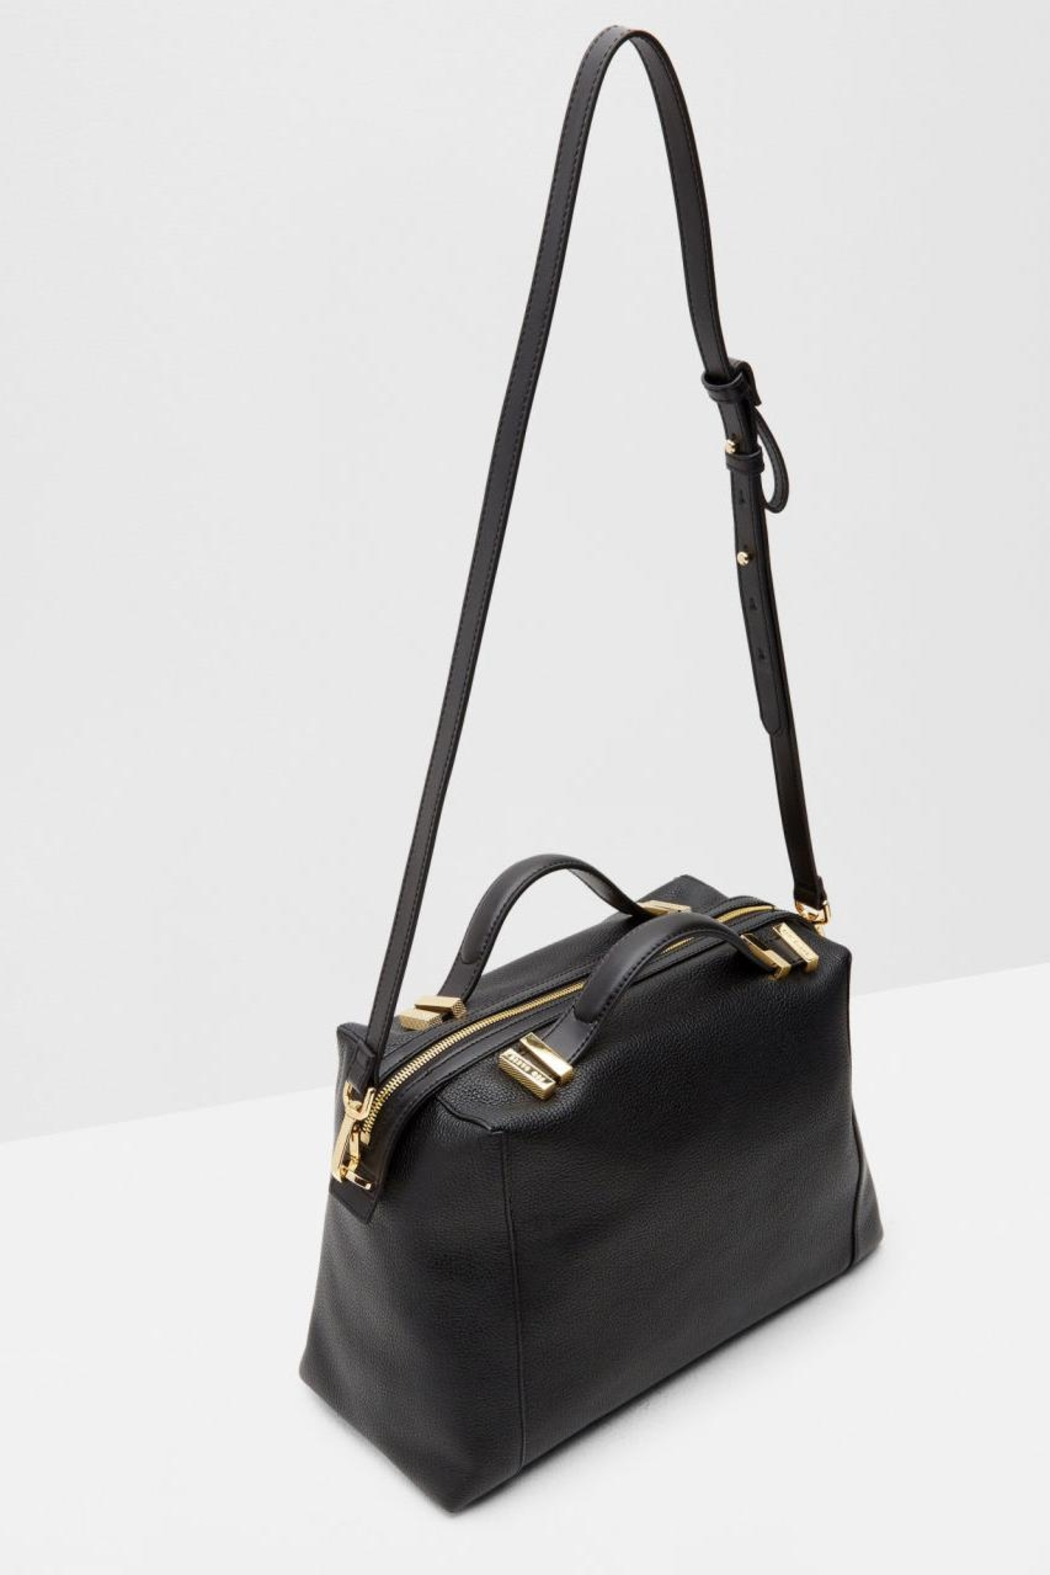 a0693638995f9e Ted Baker London Albee Tote Bag from Wallingford by The Dressing ...